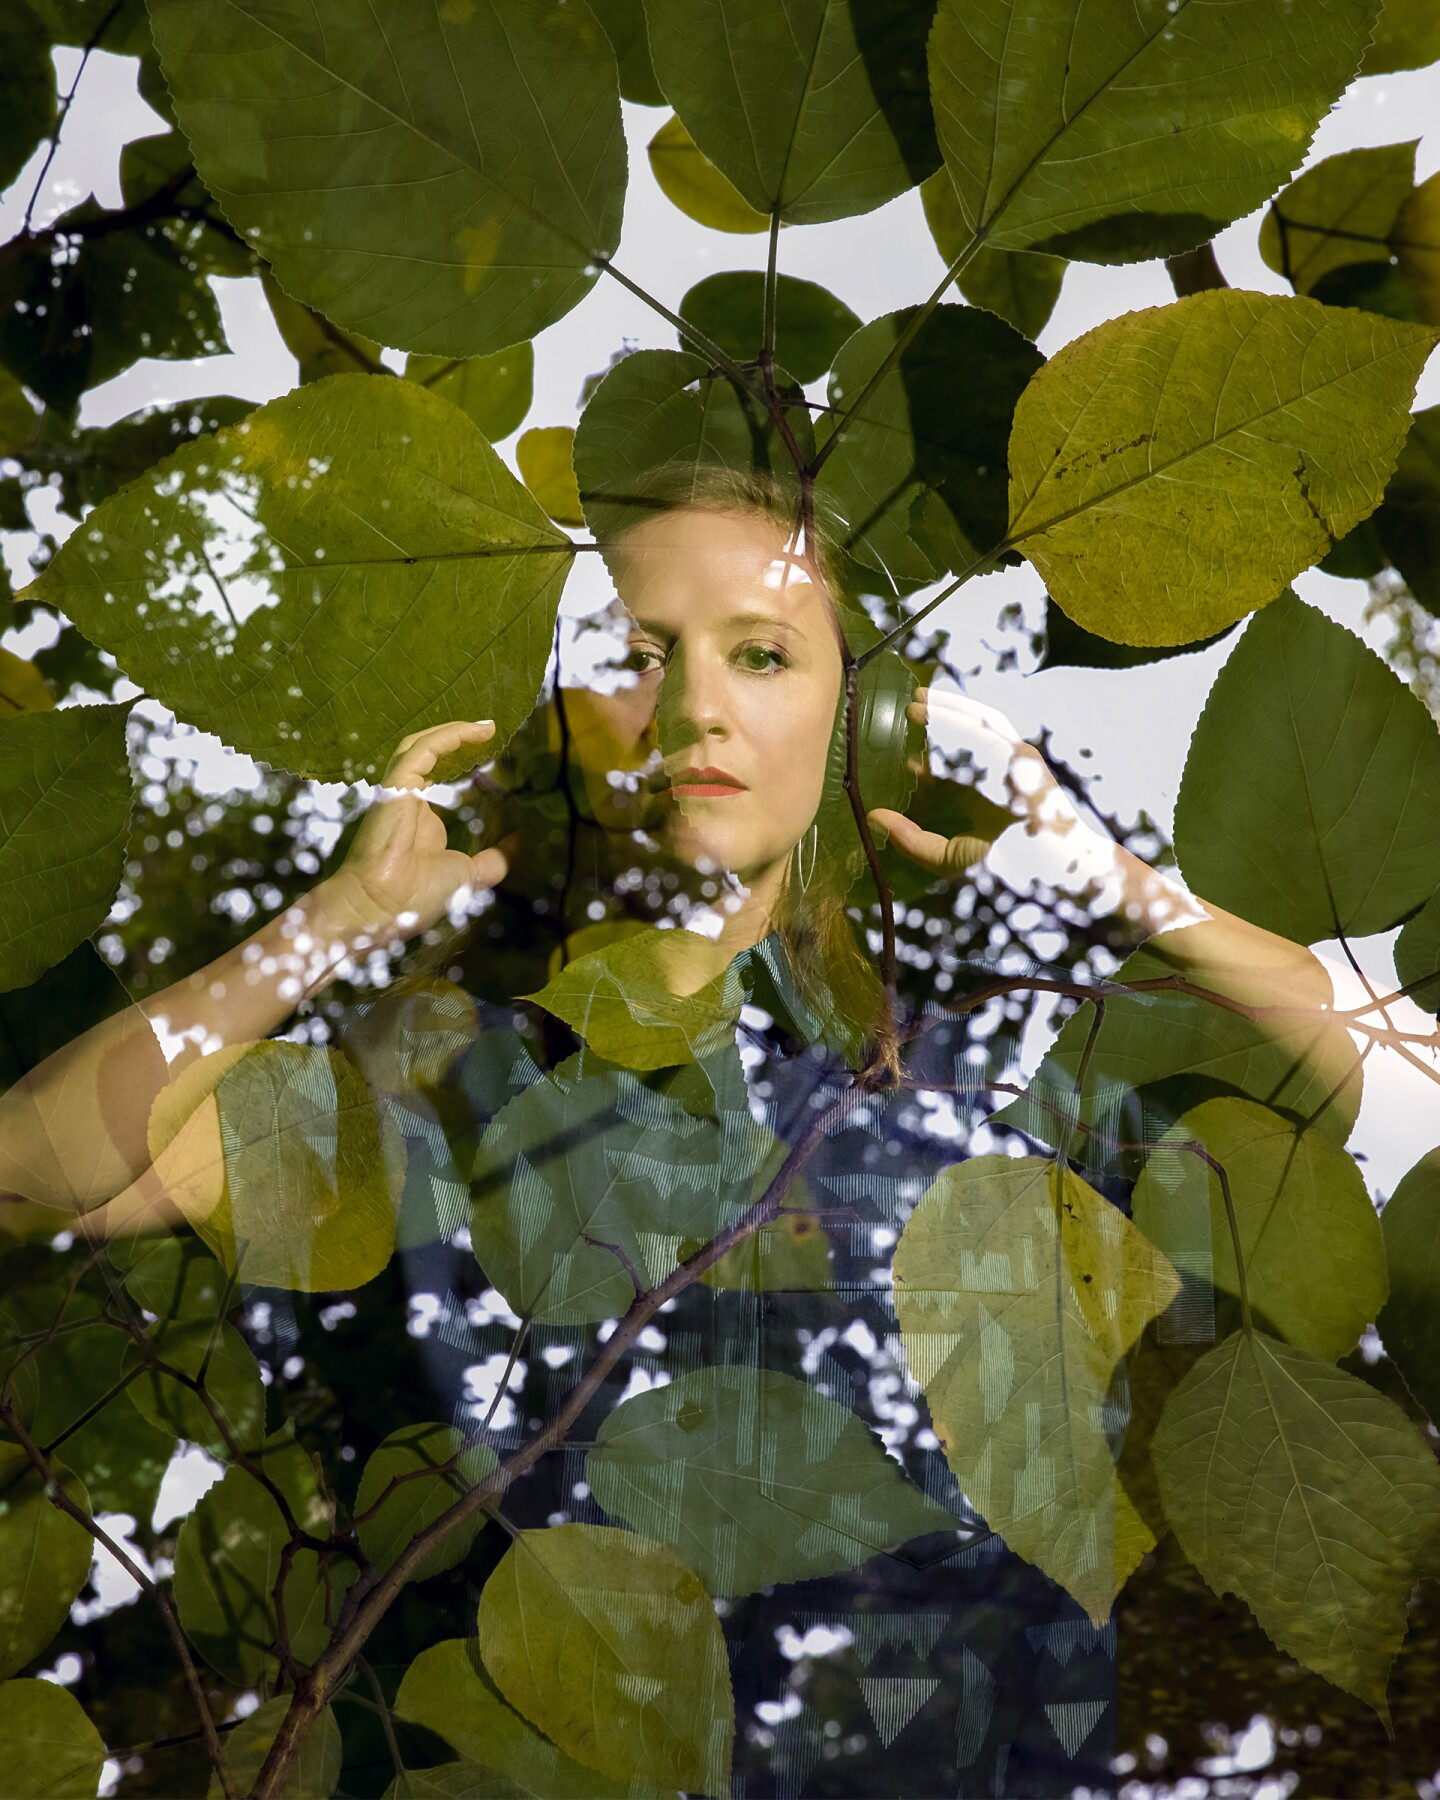 A woman wearing headphones overlaid with leaves